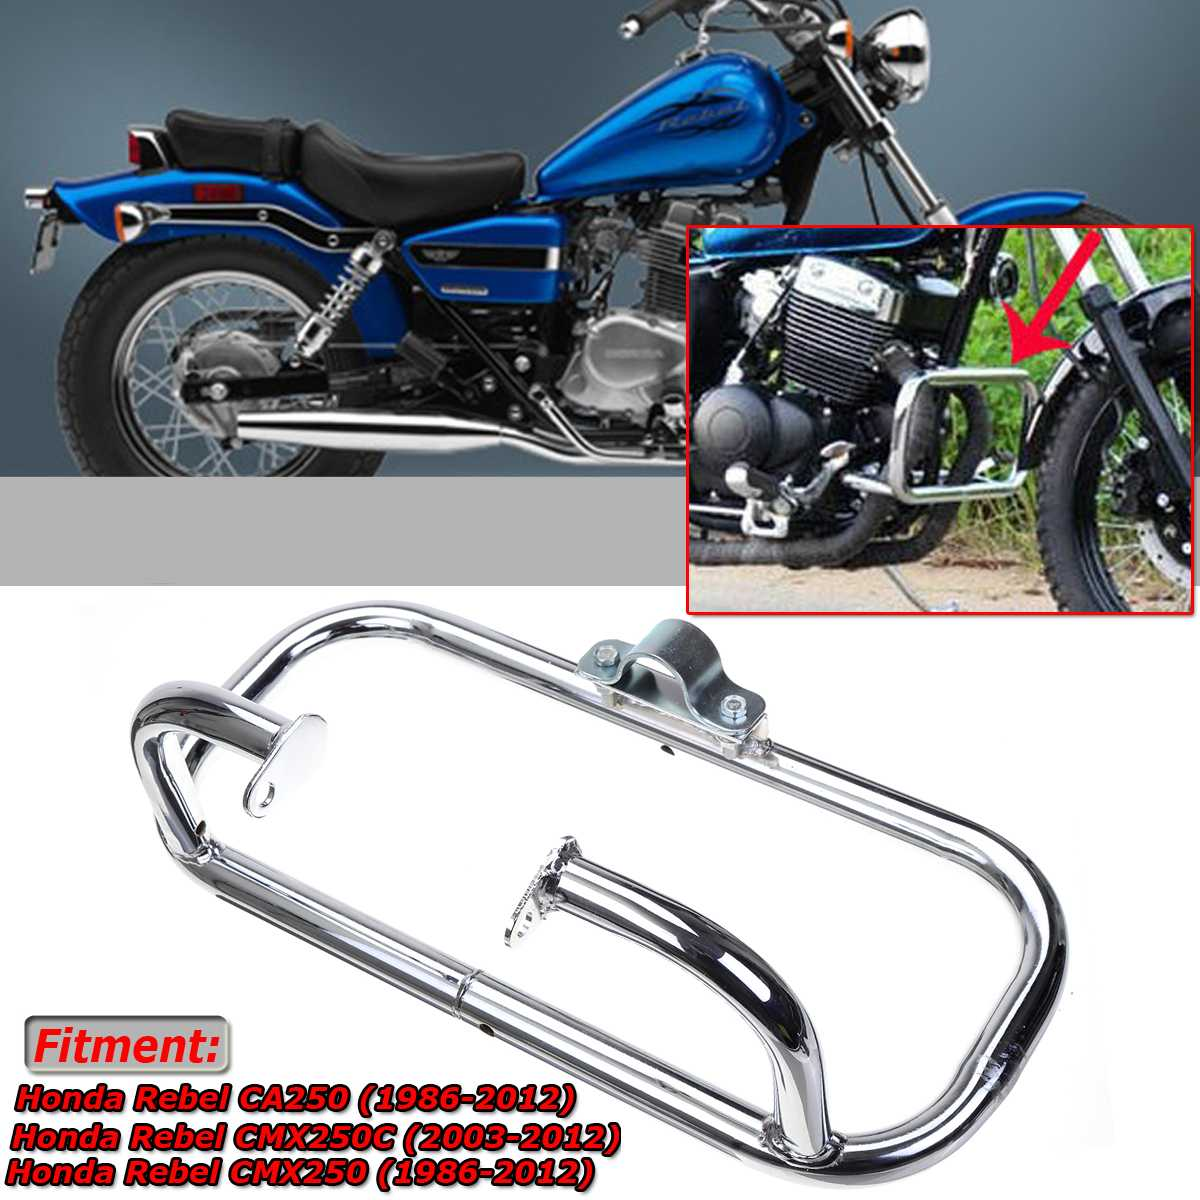 medium resolution of new engine guard crash bar motorcycle front engine guard crash bar for honda rebel 250 ca250 cmx250 cmx250c metal safety bumper in bumpers chassis from